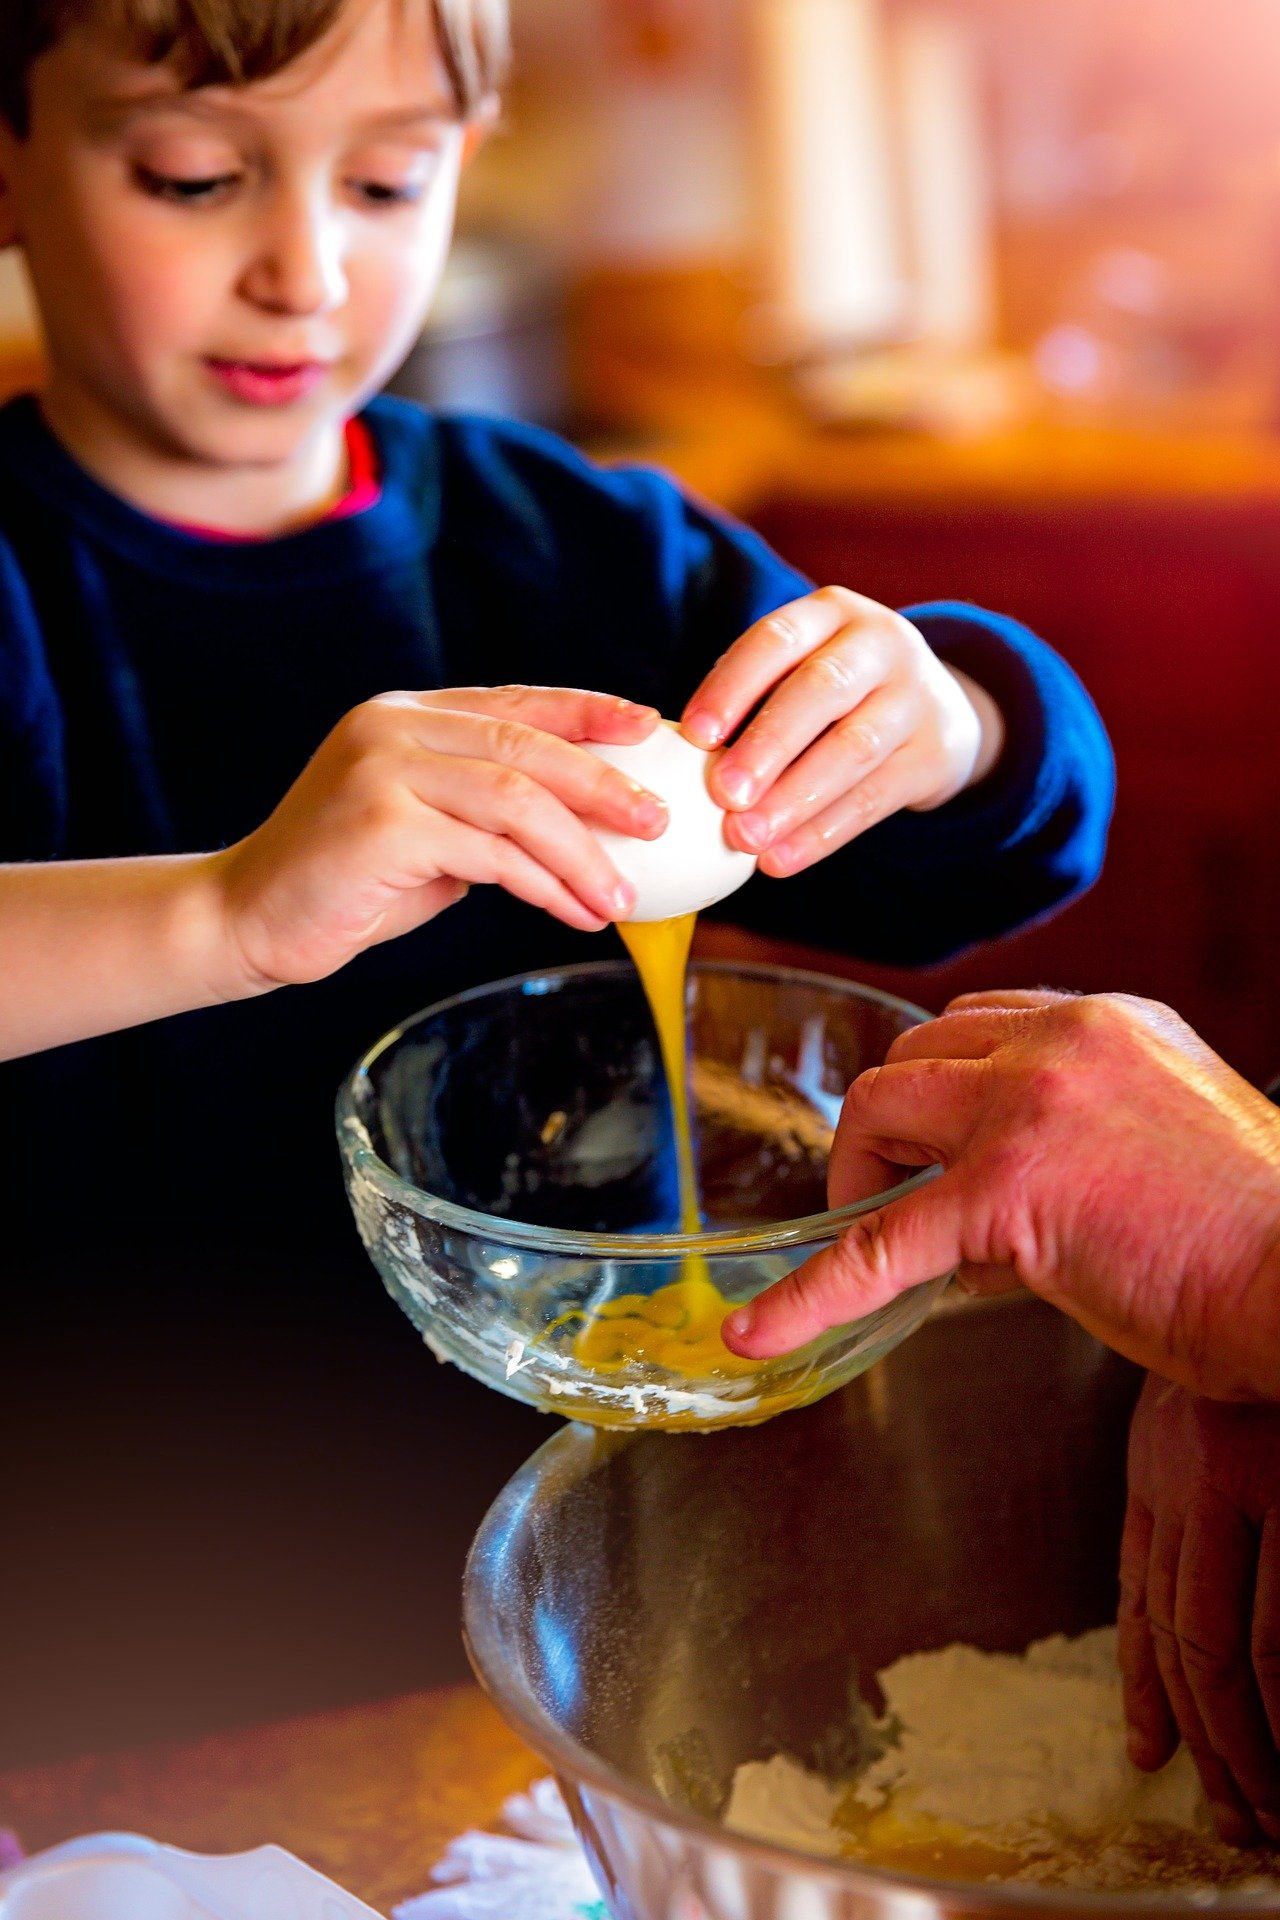 Raddish Kids Introduces a Scholarship Program for Underserved Kids With a Passion for Cooking